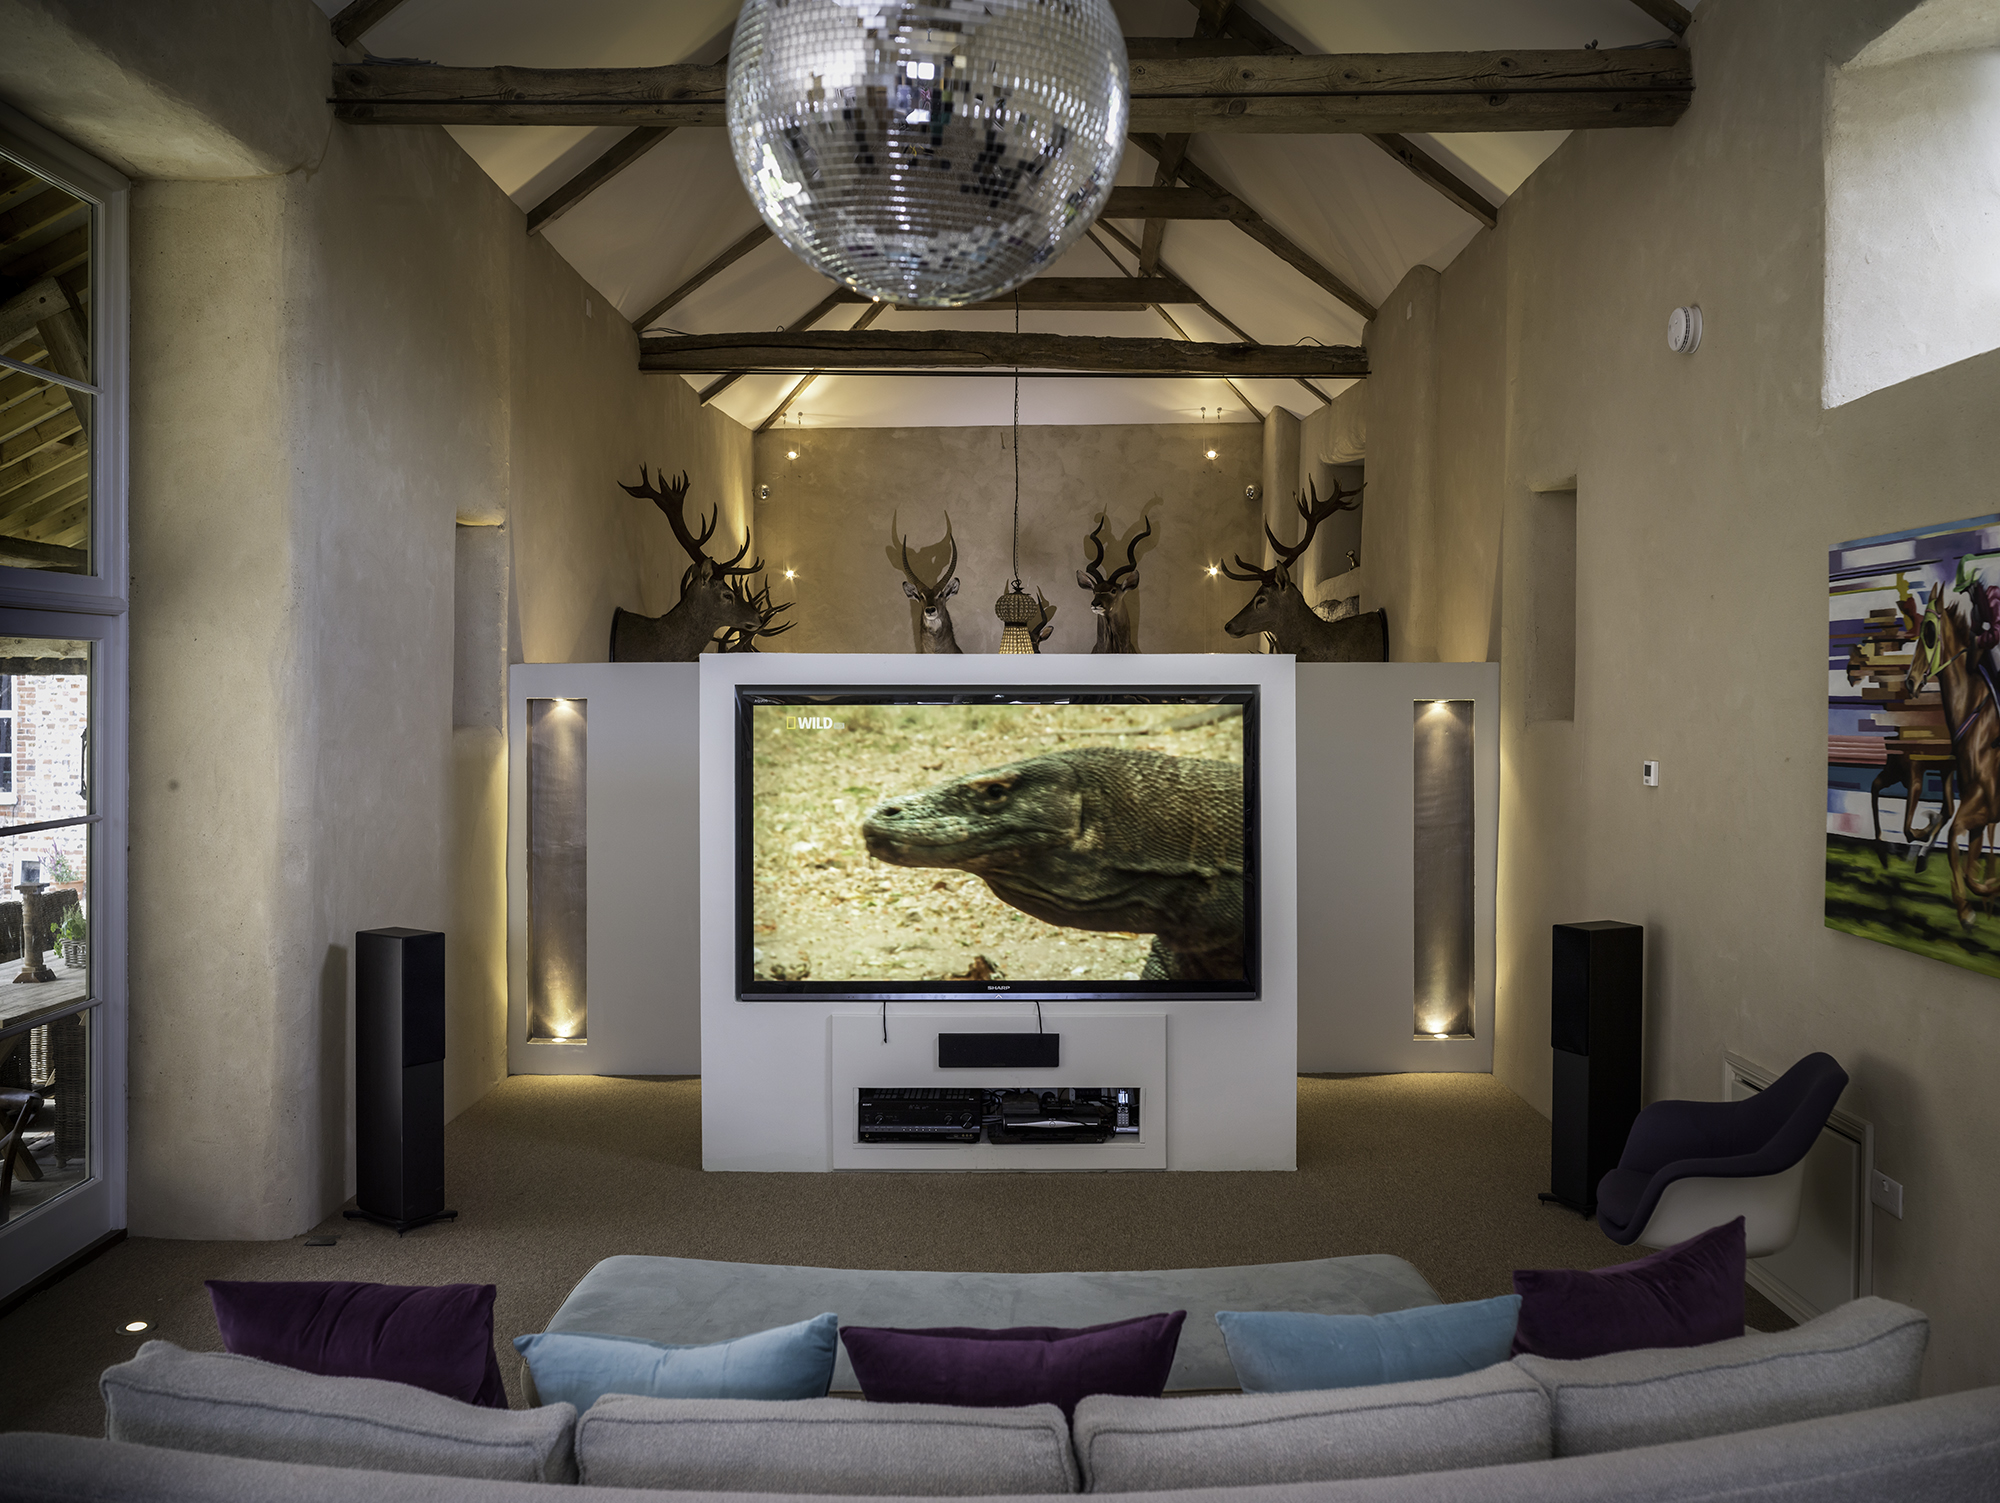 North Norfolk Country House - TV Barn by Kelling Designs